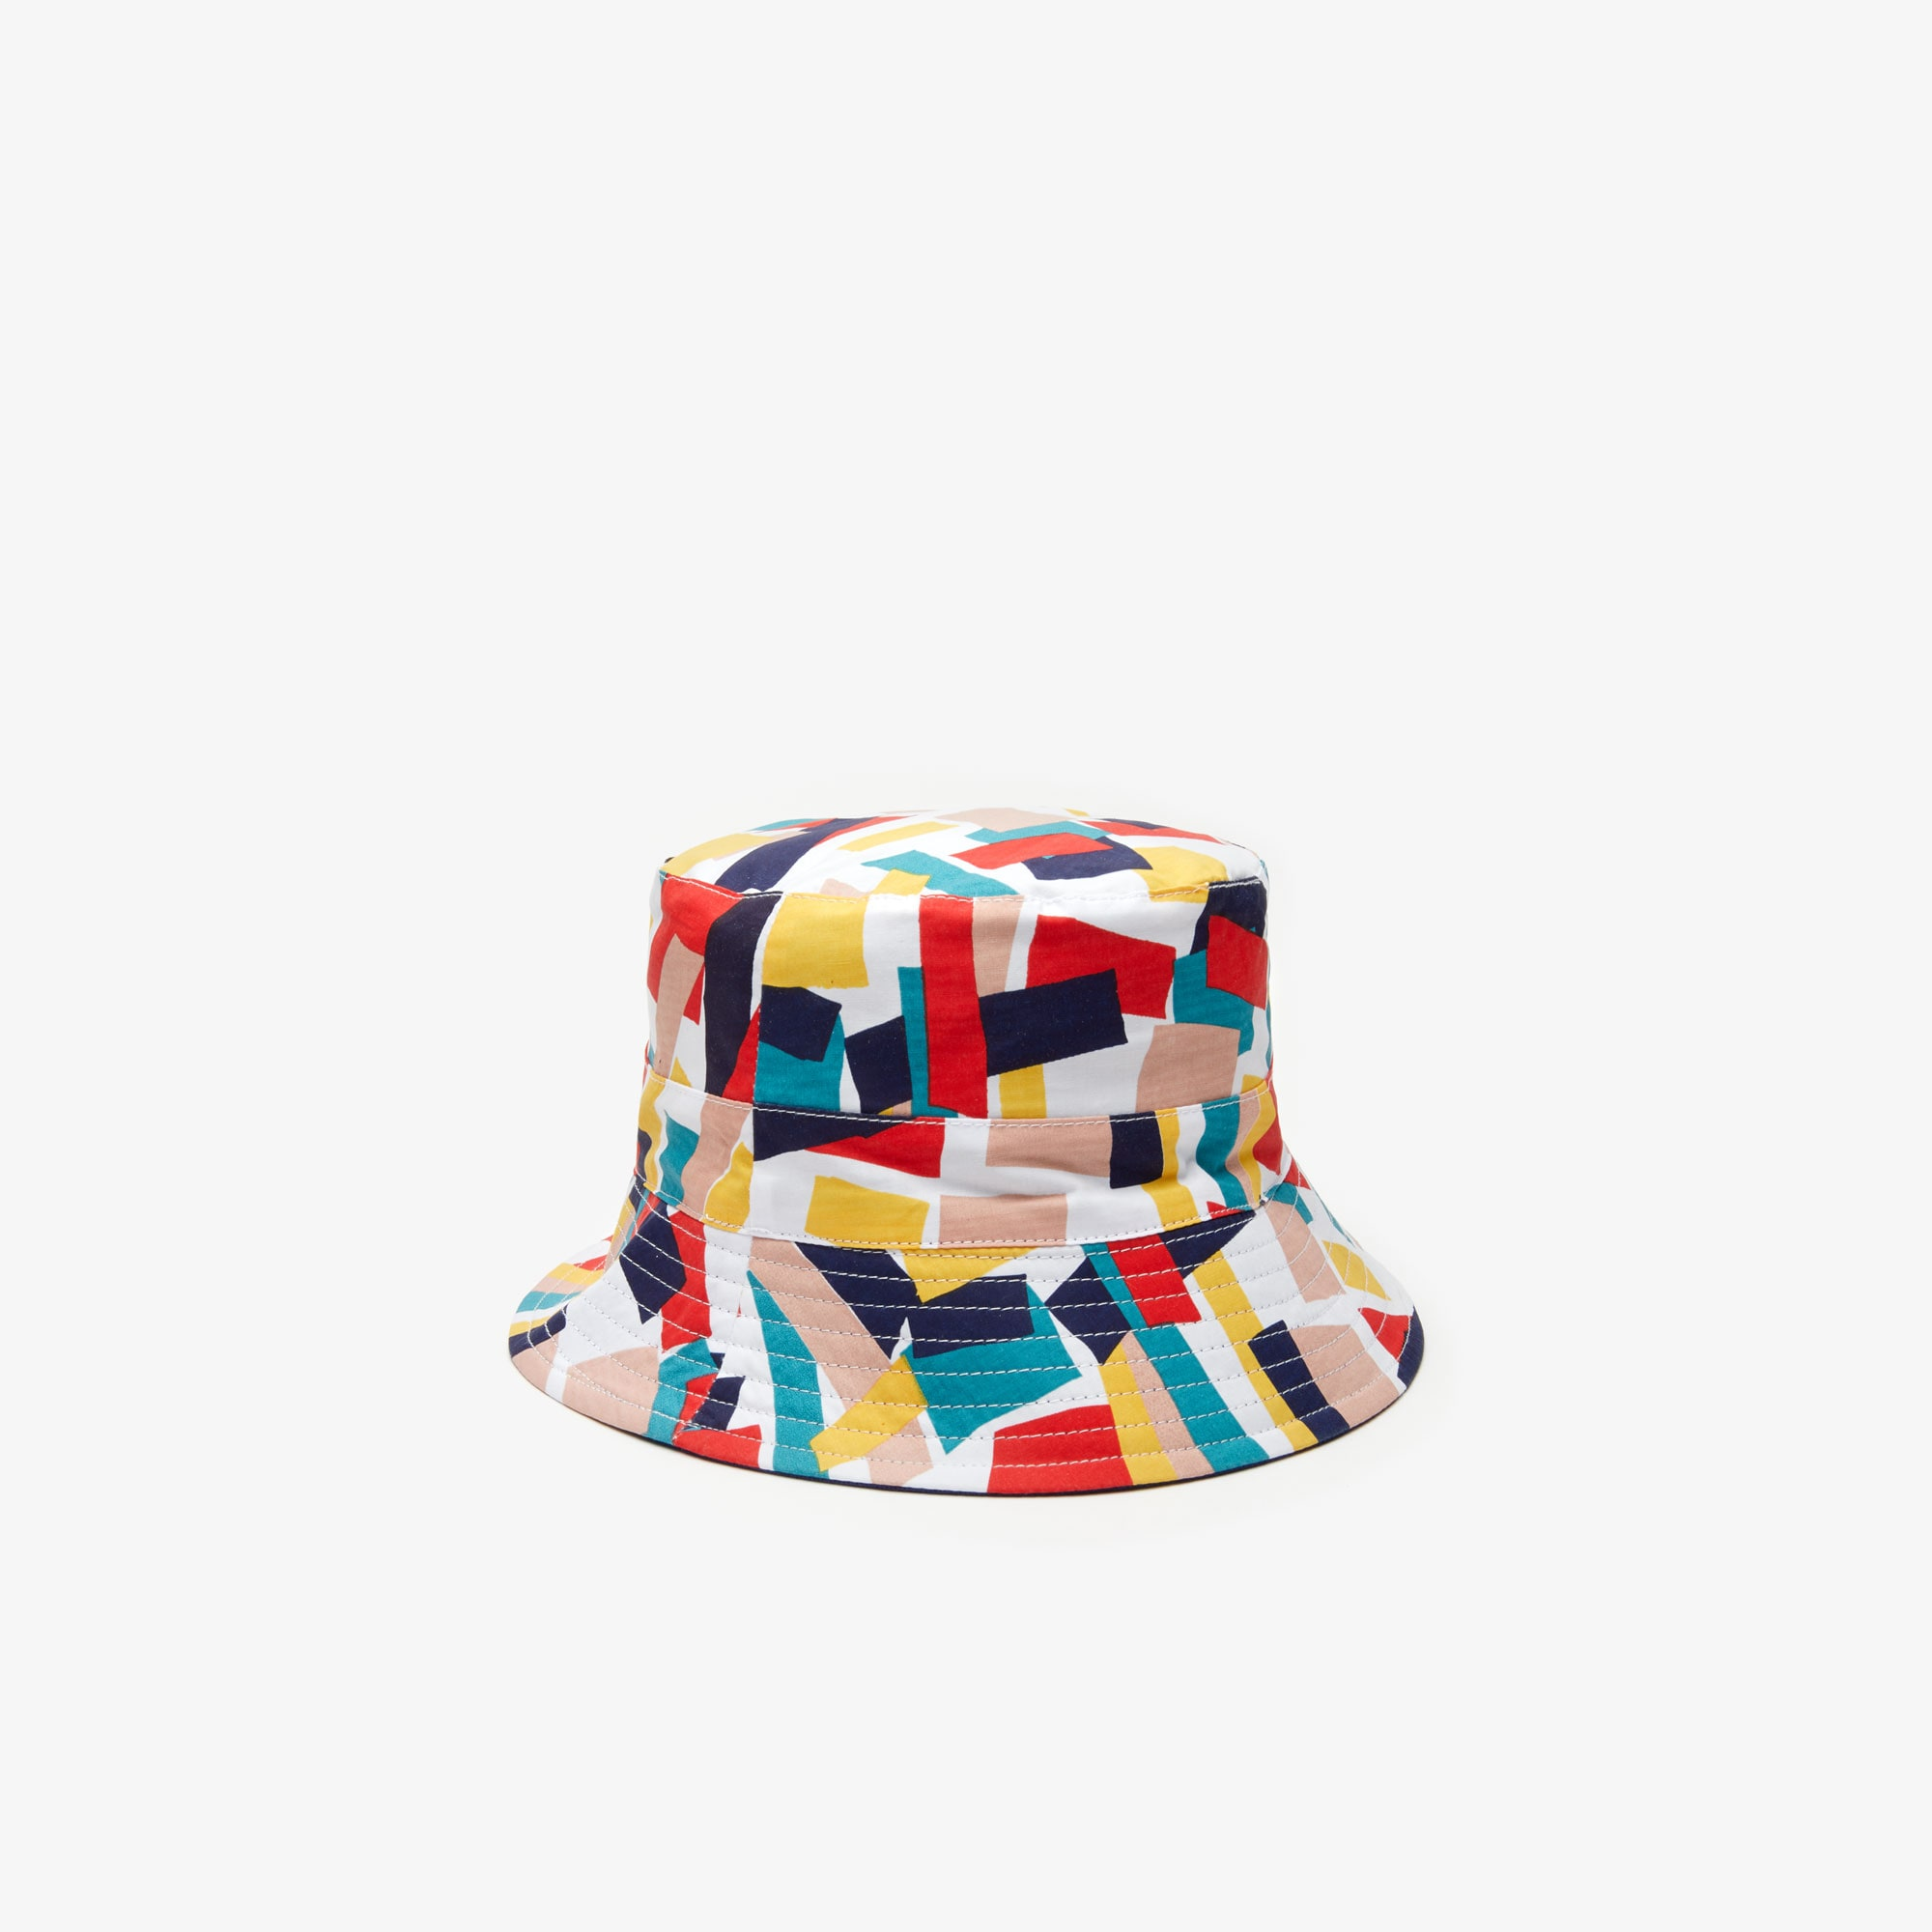 Women's Colourfully Patterned Reversible Hat